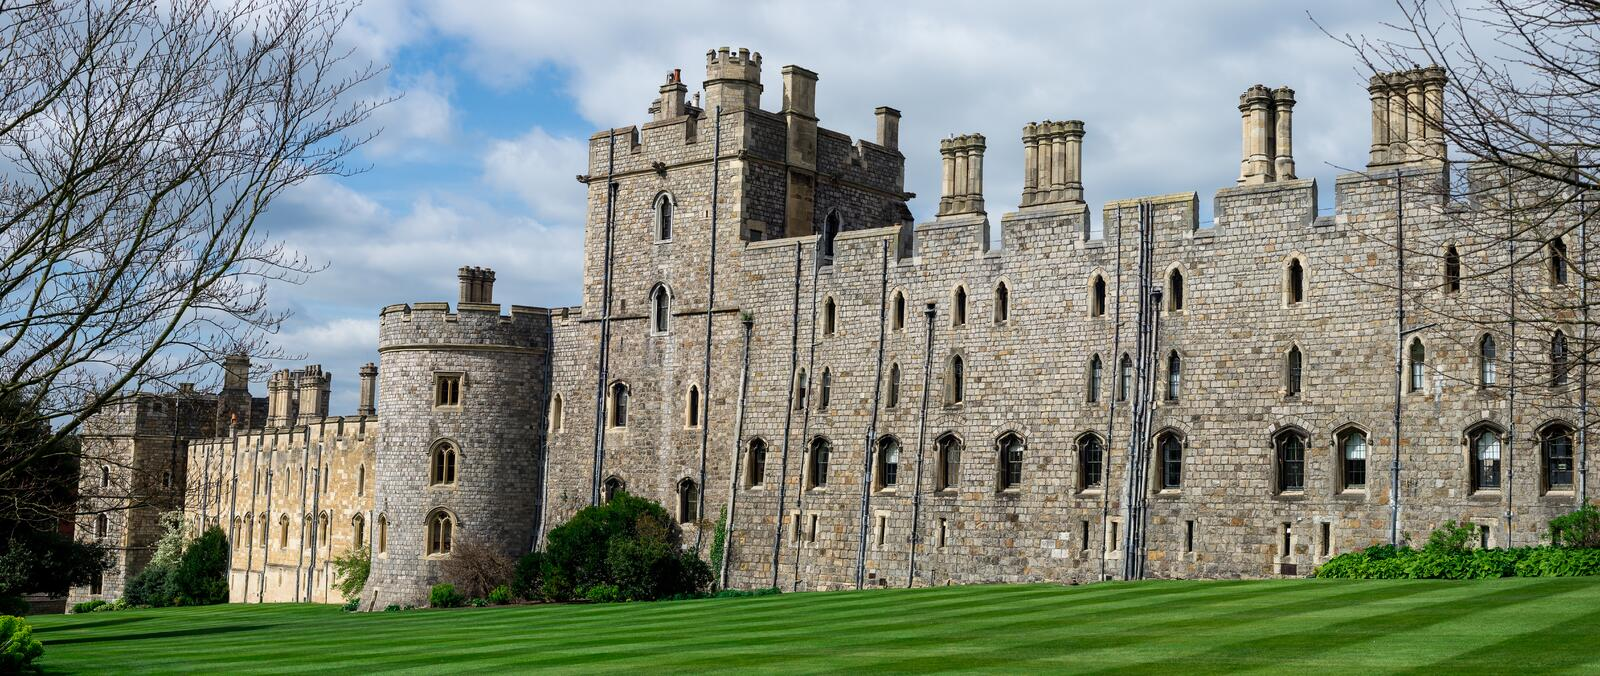 View of Windsor Castle walls and tower with arched windows, England stock photography